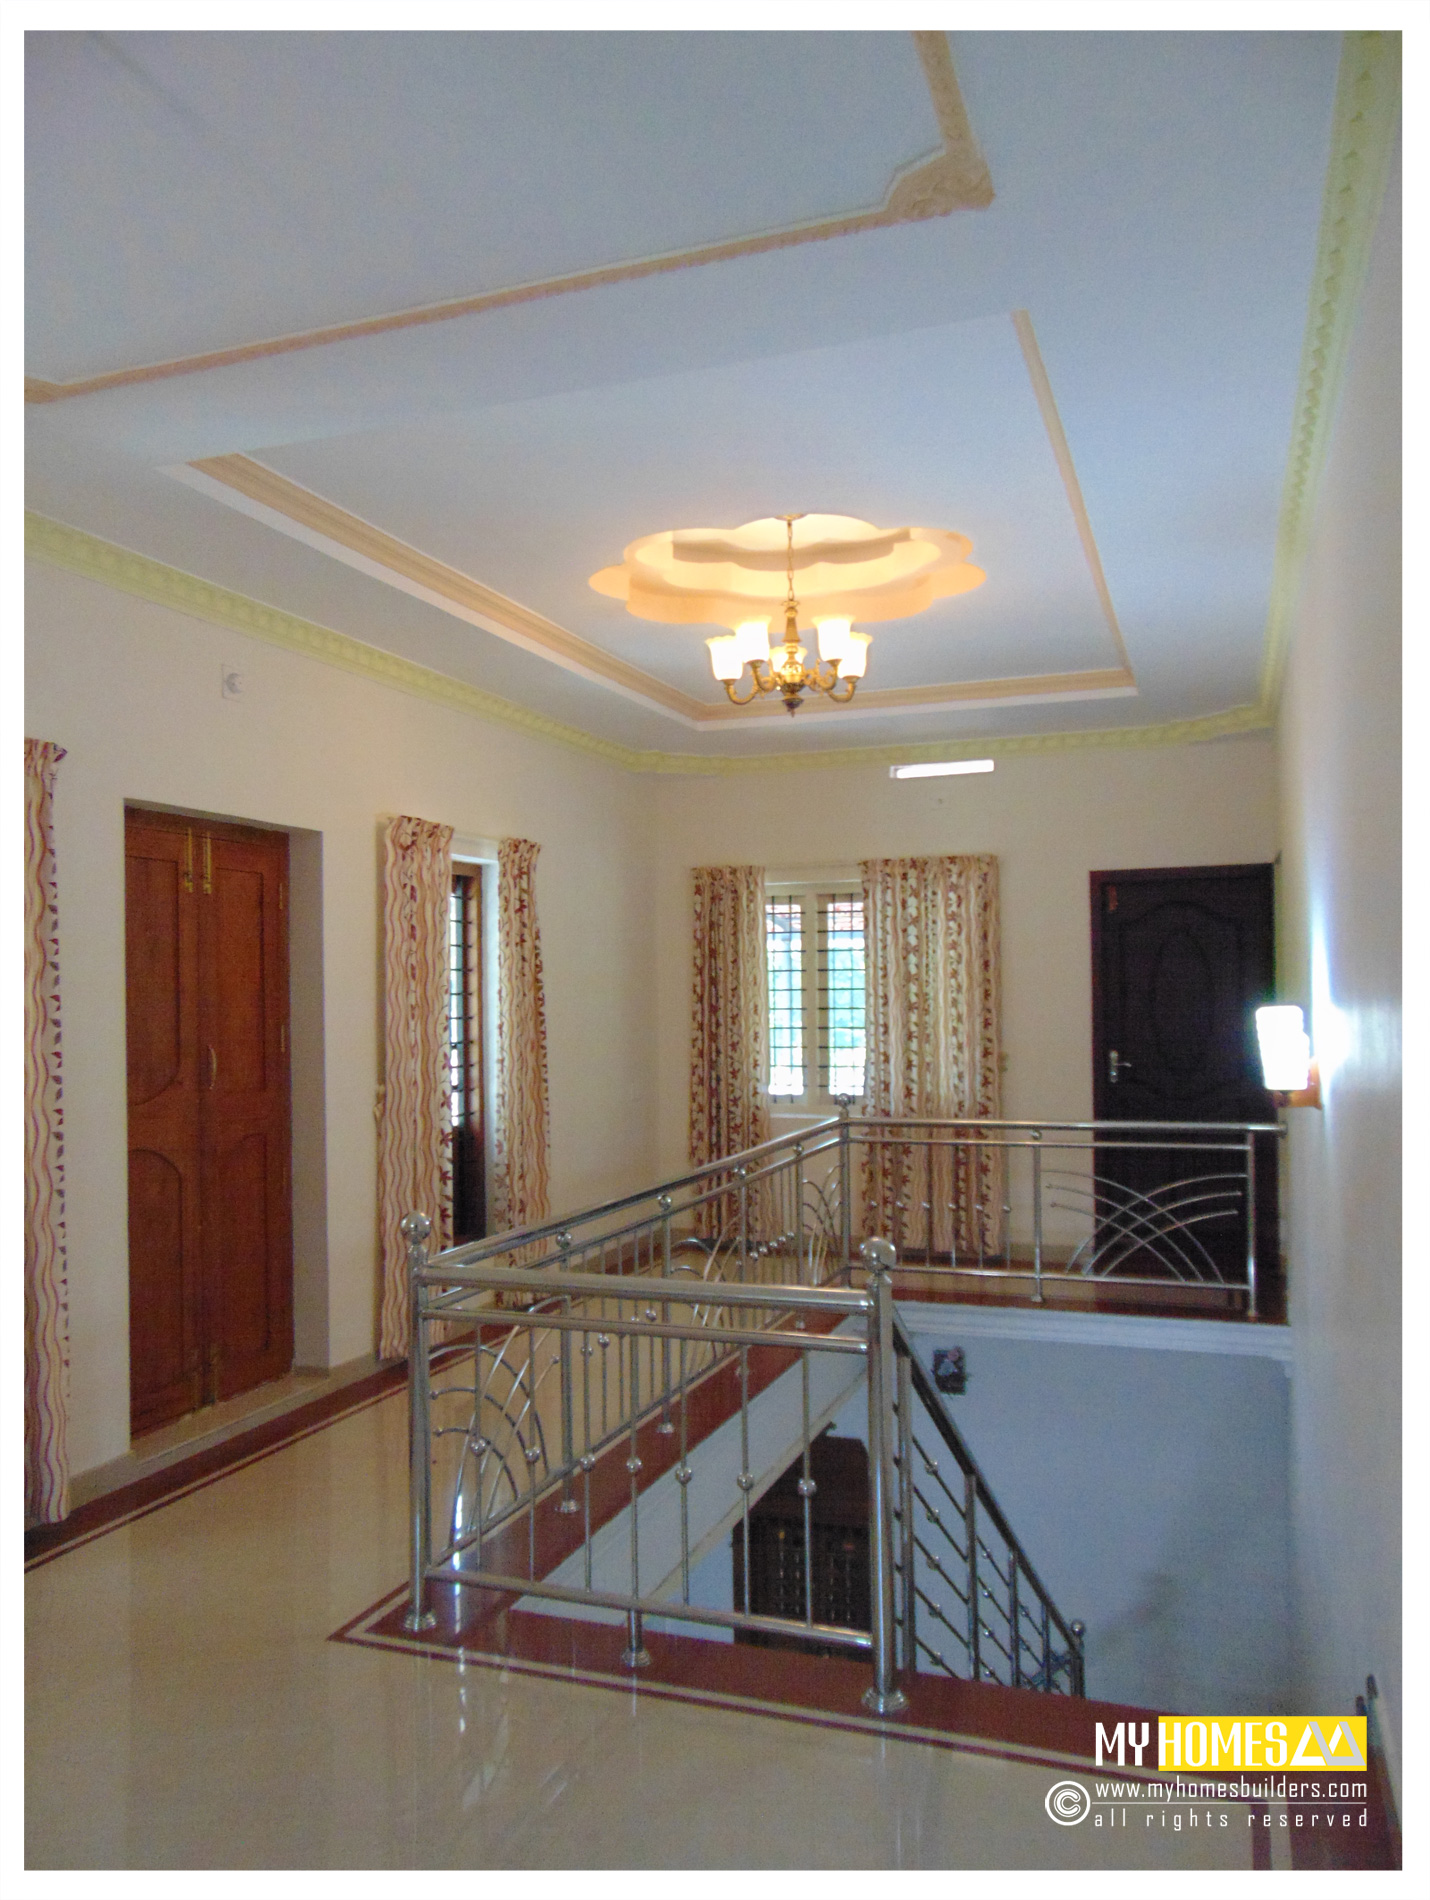 Top quality staircase design in kerala from my homes thrissur - Ideal staircase ideas small interiors ...